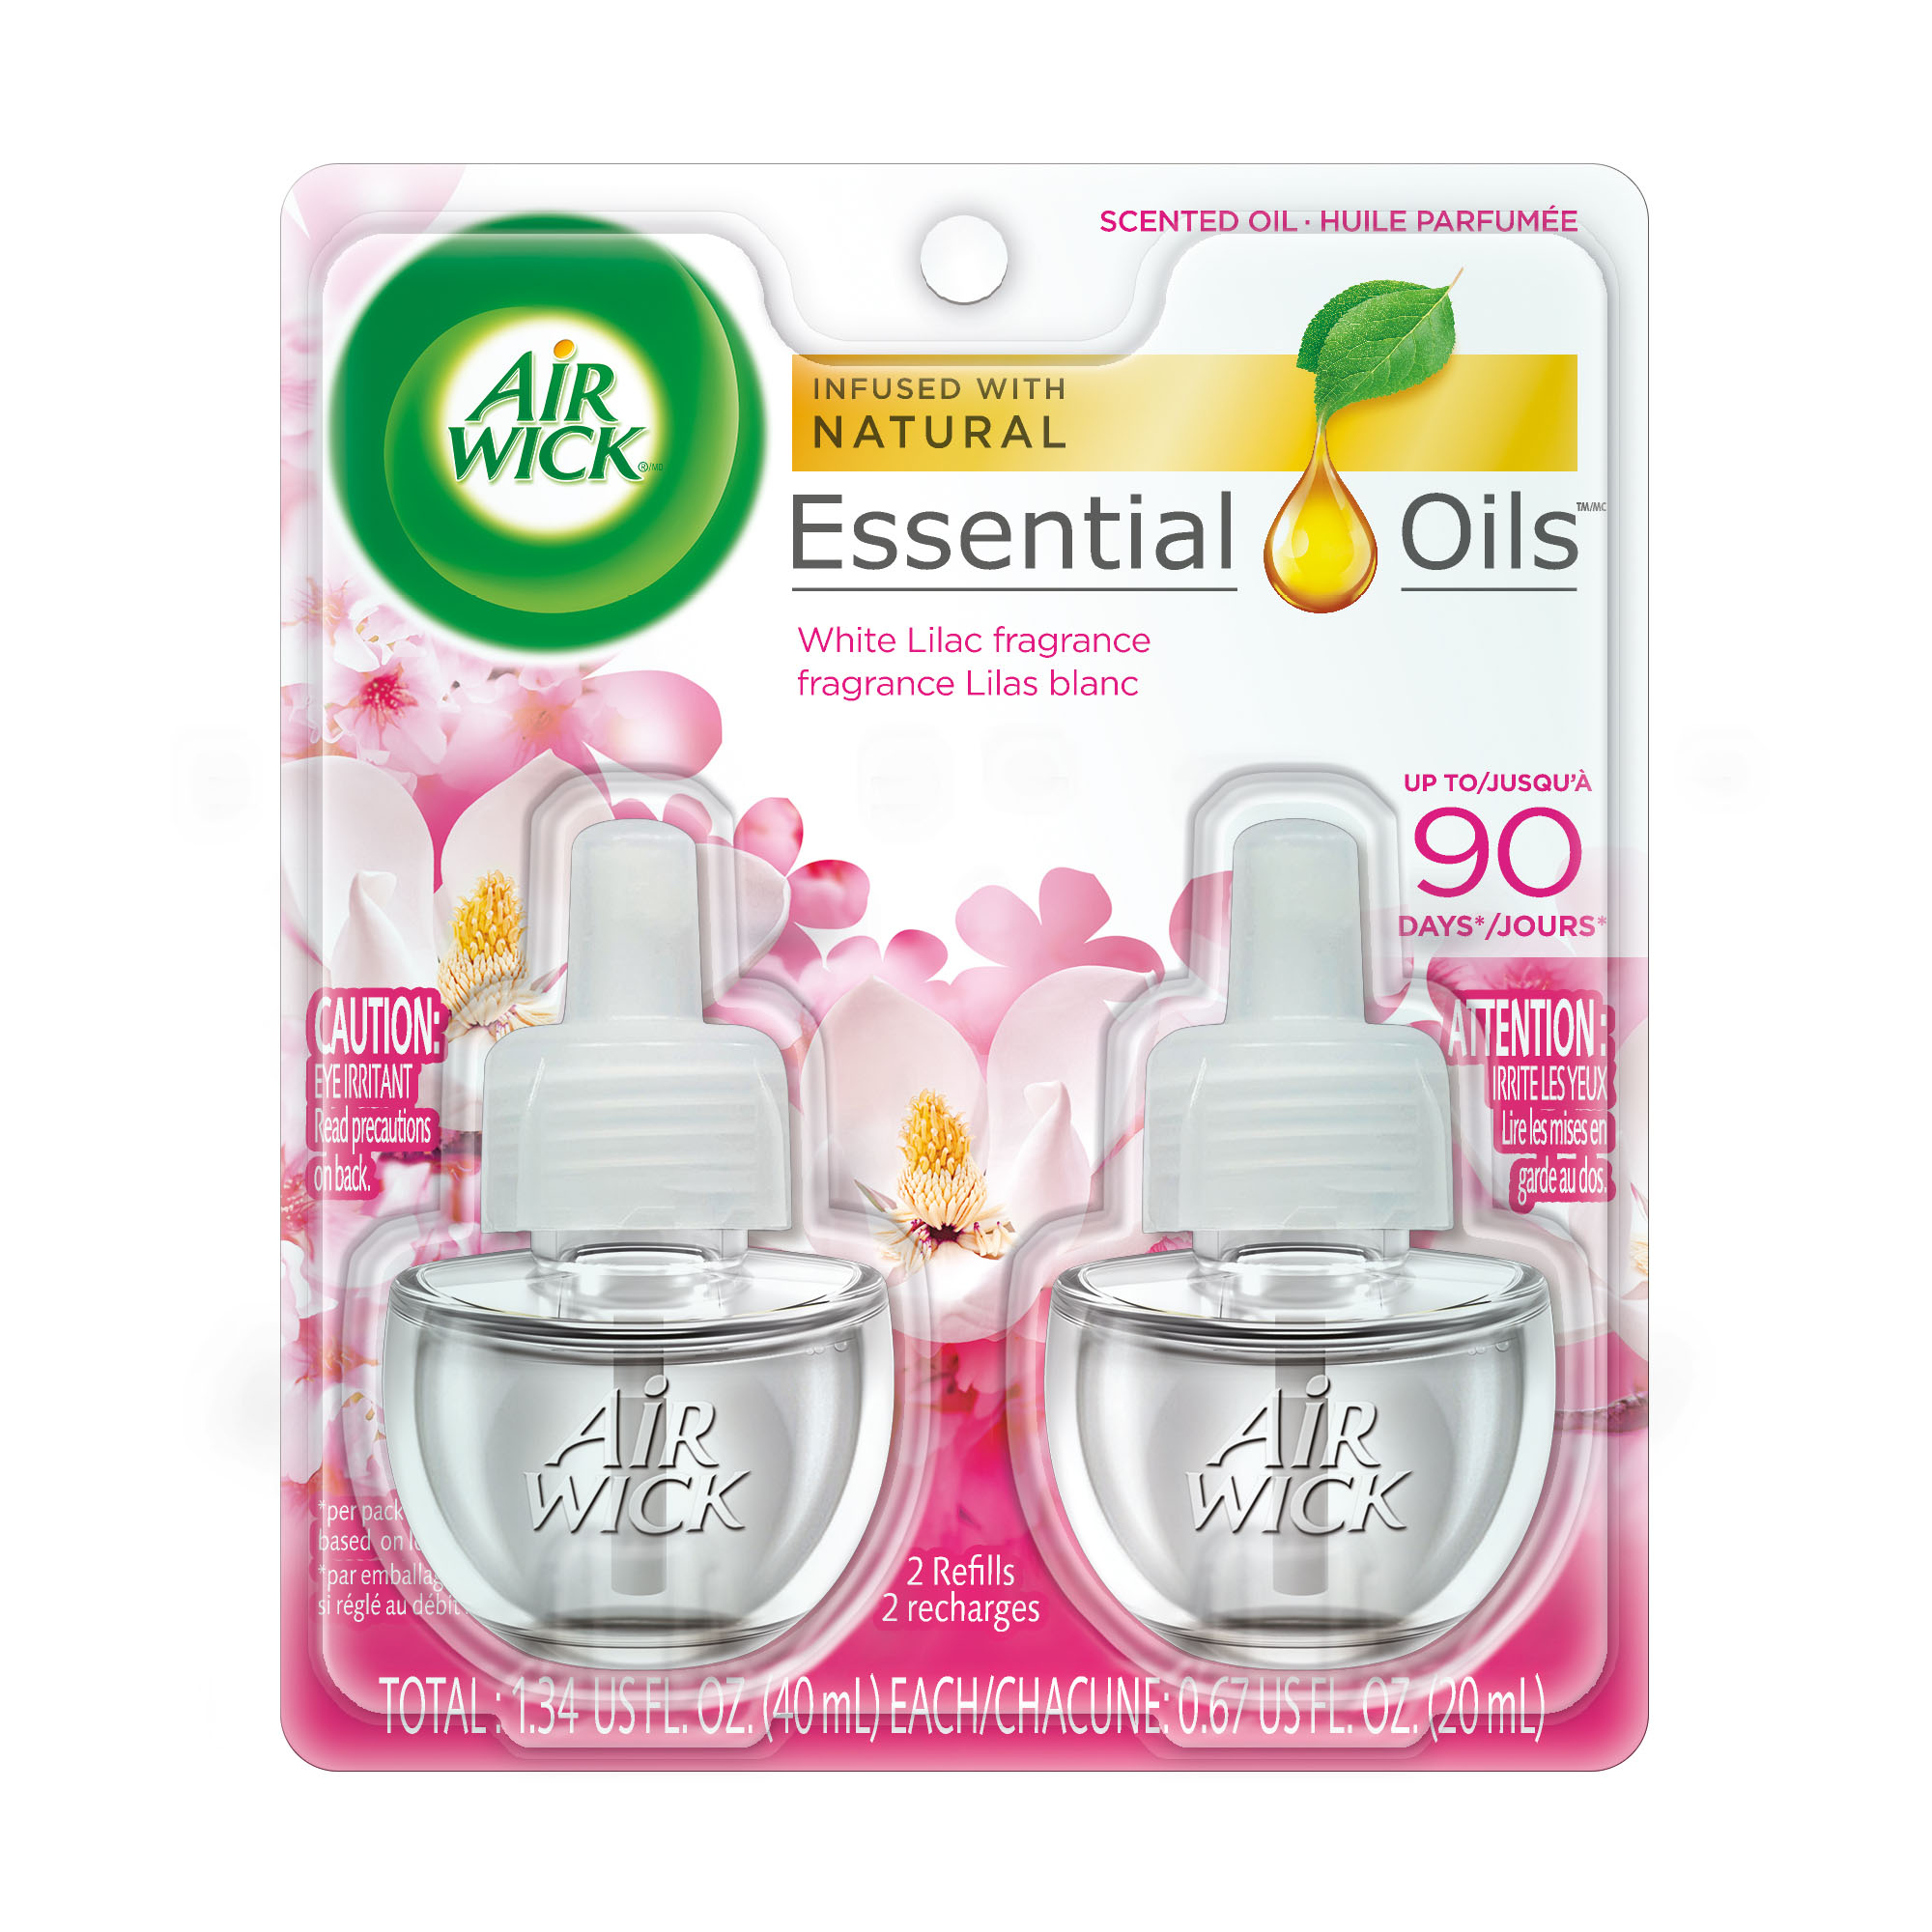 Air Wick Scented Oil 2 Refills, White Lilac, (2X0.67oz), Air Freshener